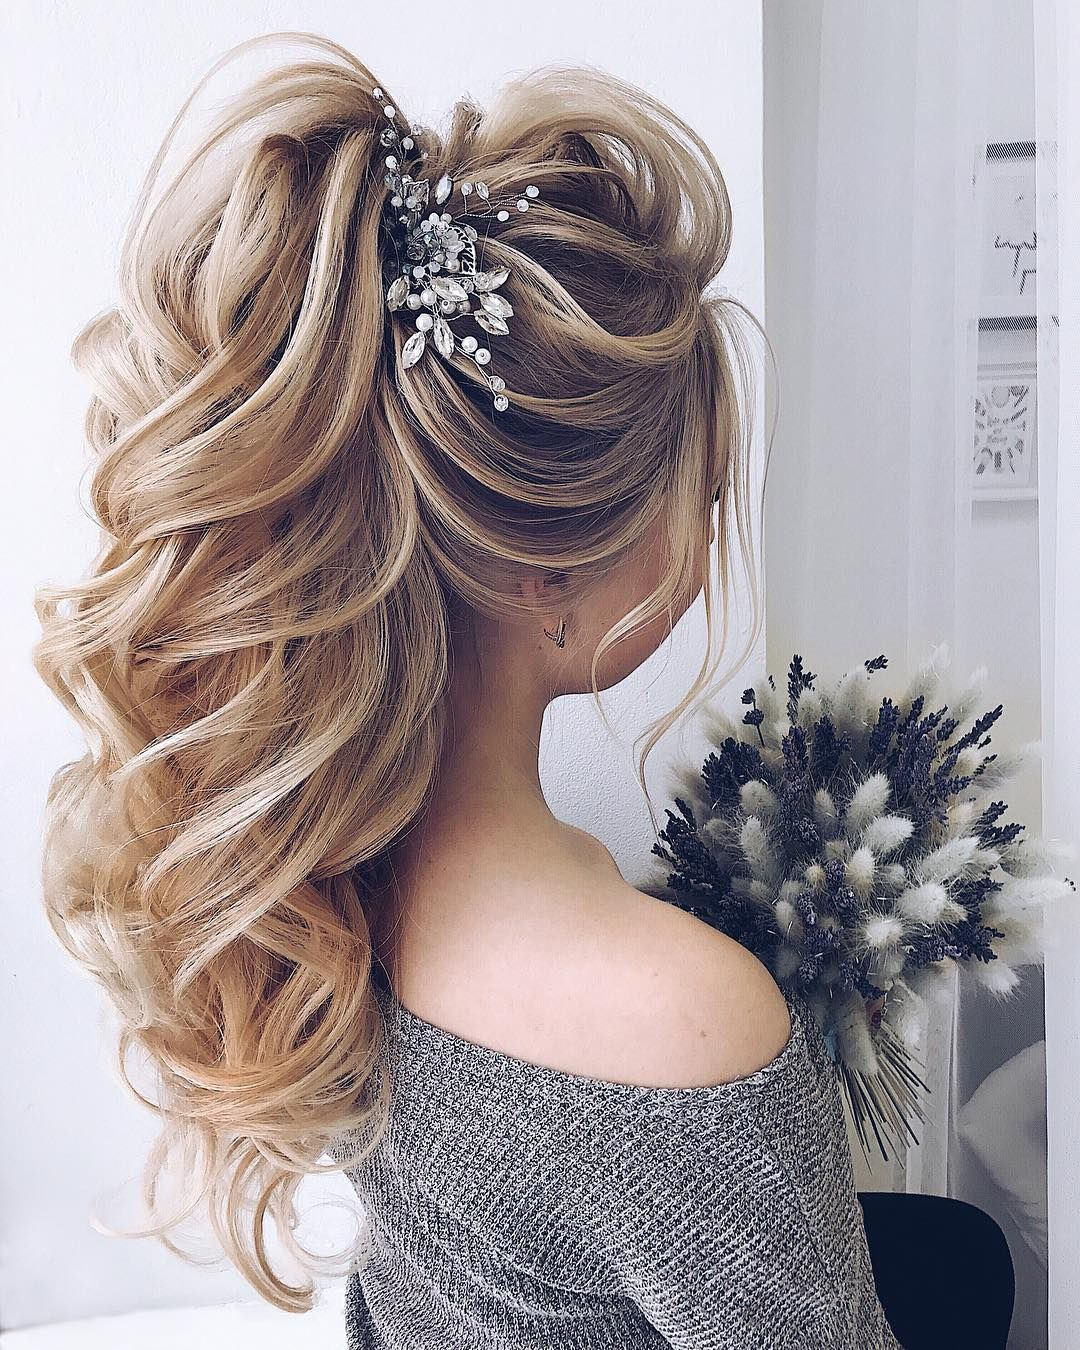 92 Drop Dead Gorgeous Wedding Hairstyles For Every Bride To Be Elegant Ponytail Pony Hairstyles High Pony Hairstyle